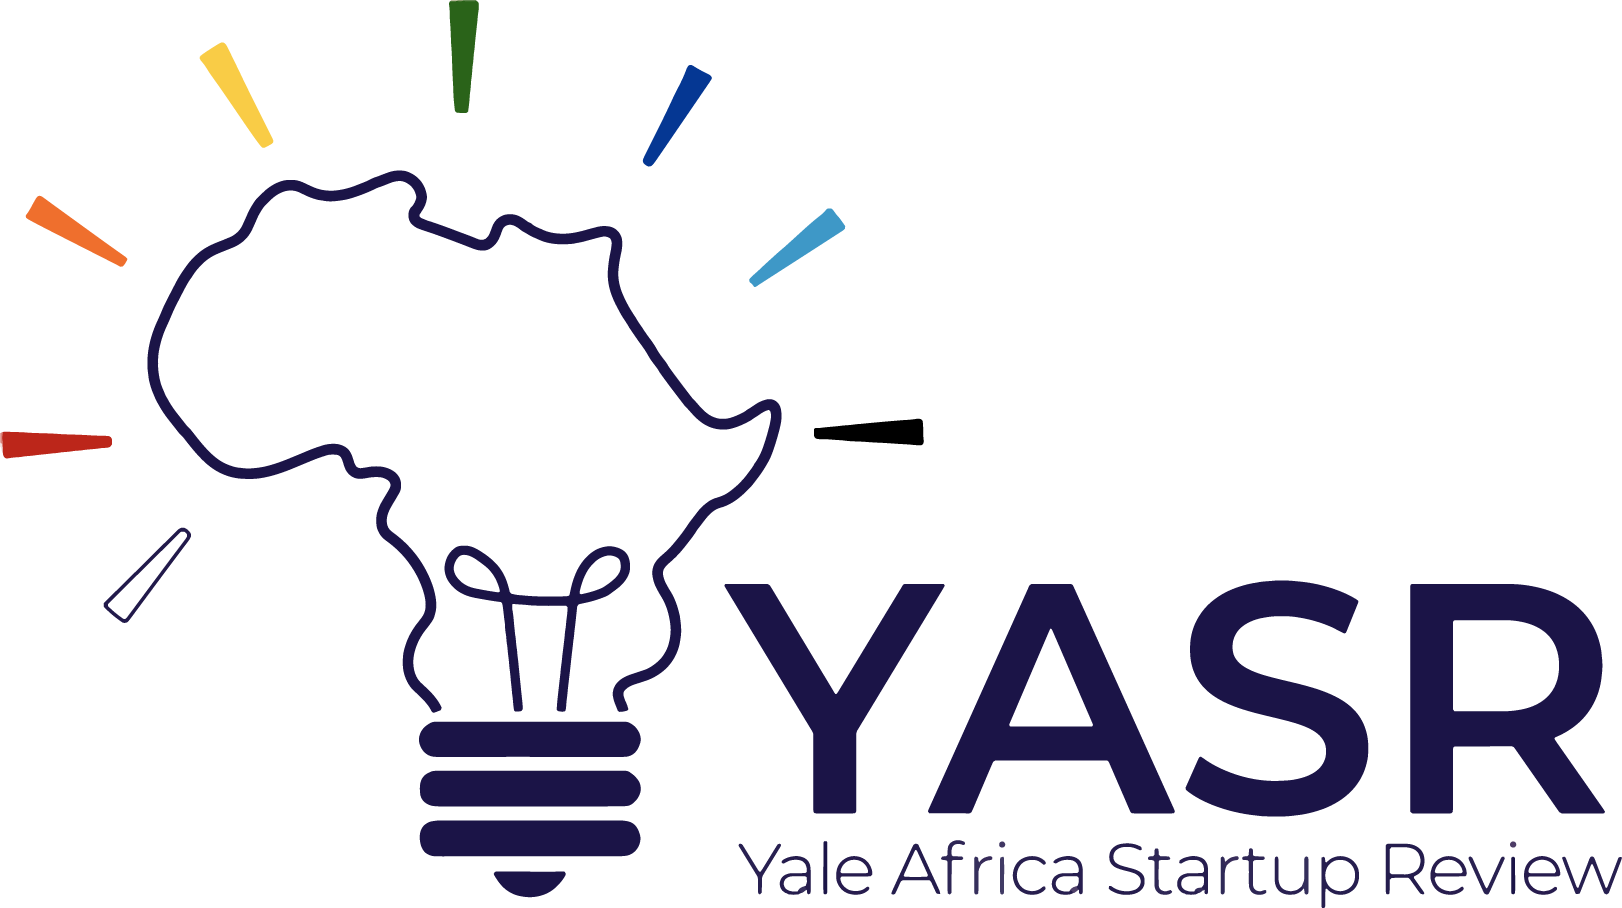 Yale African Startup Review